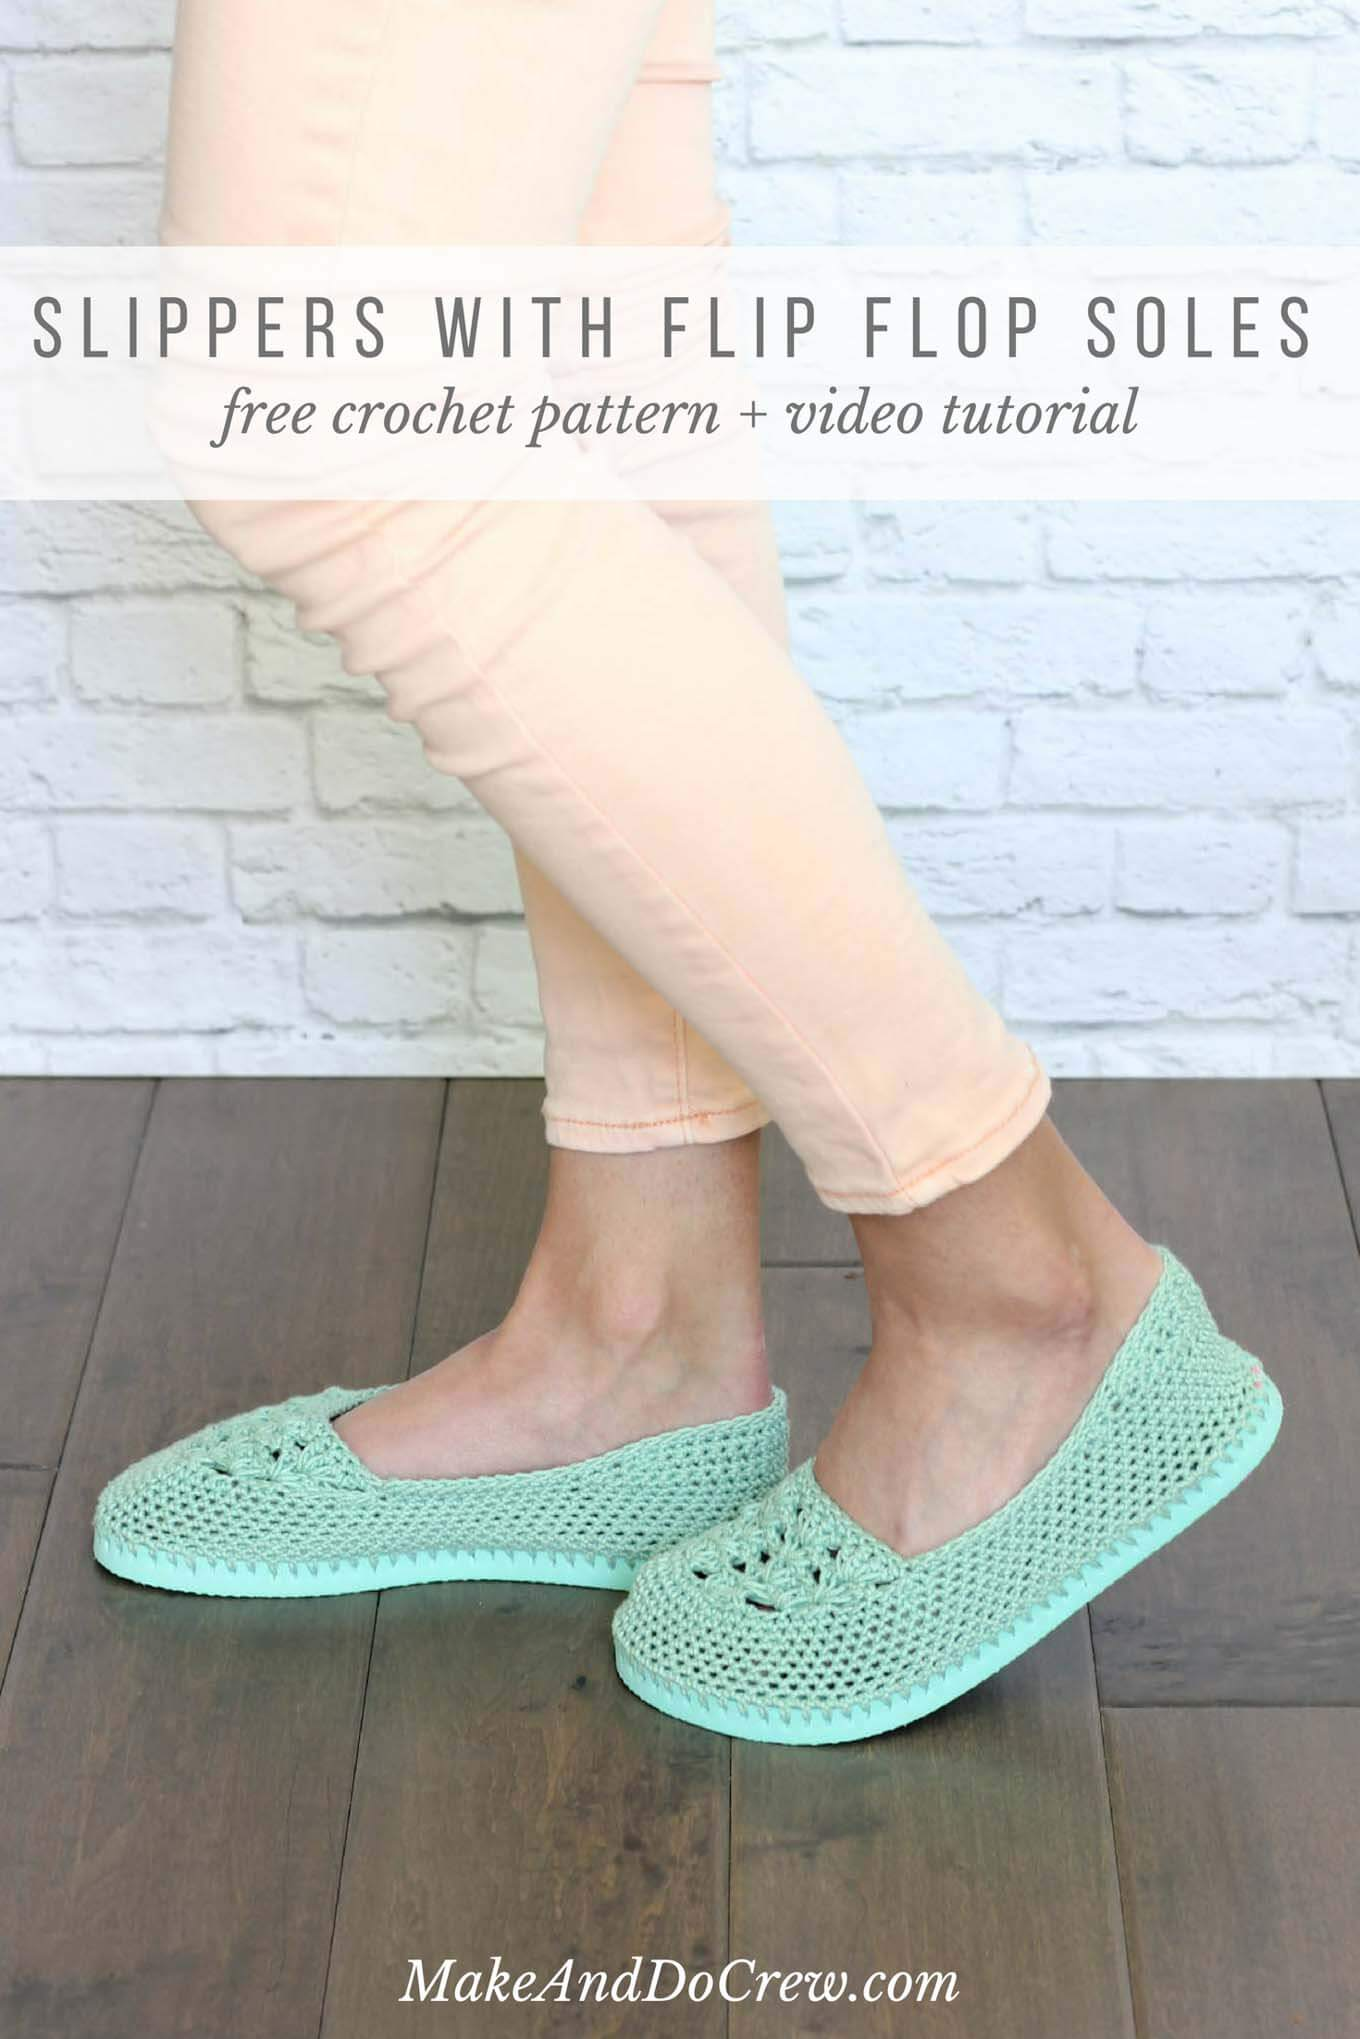 5e1ea01dd1810 Crochet Slippers with Flip Flop Soles -- Free Pattern + Video Tutorial!